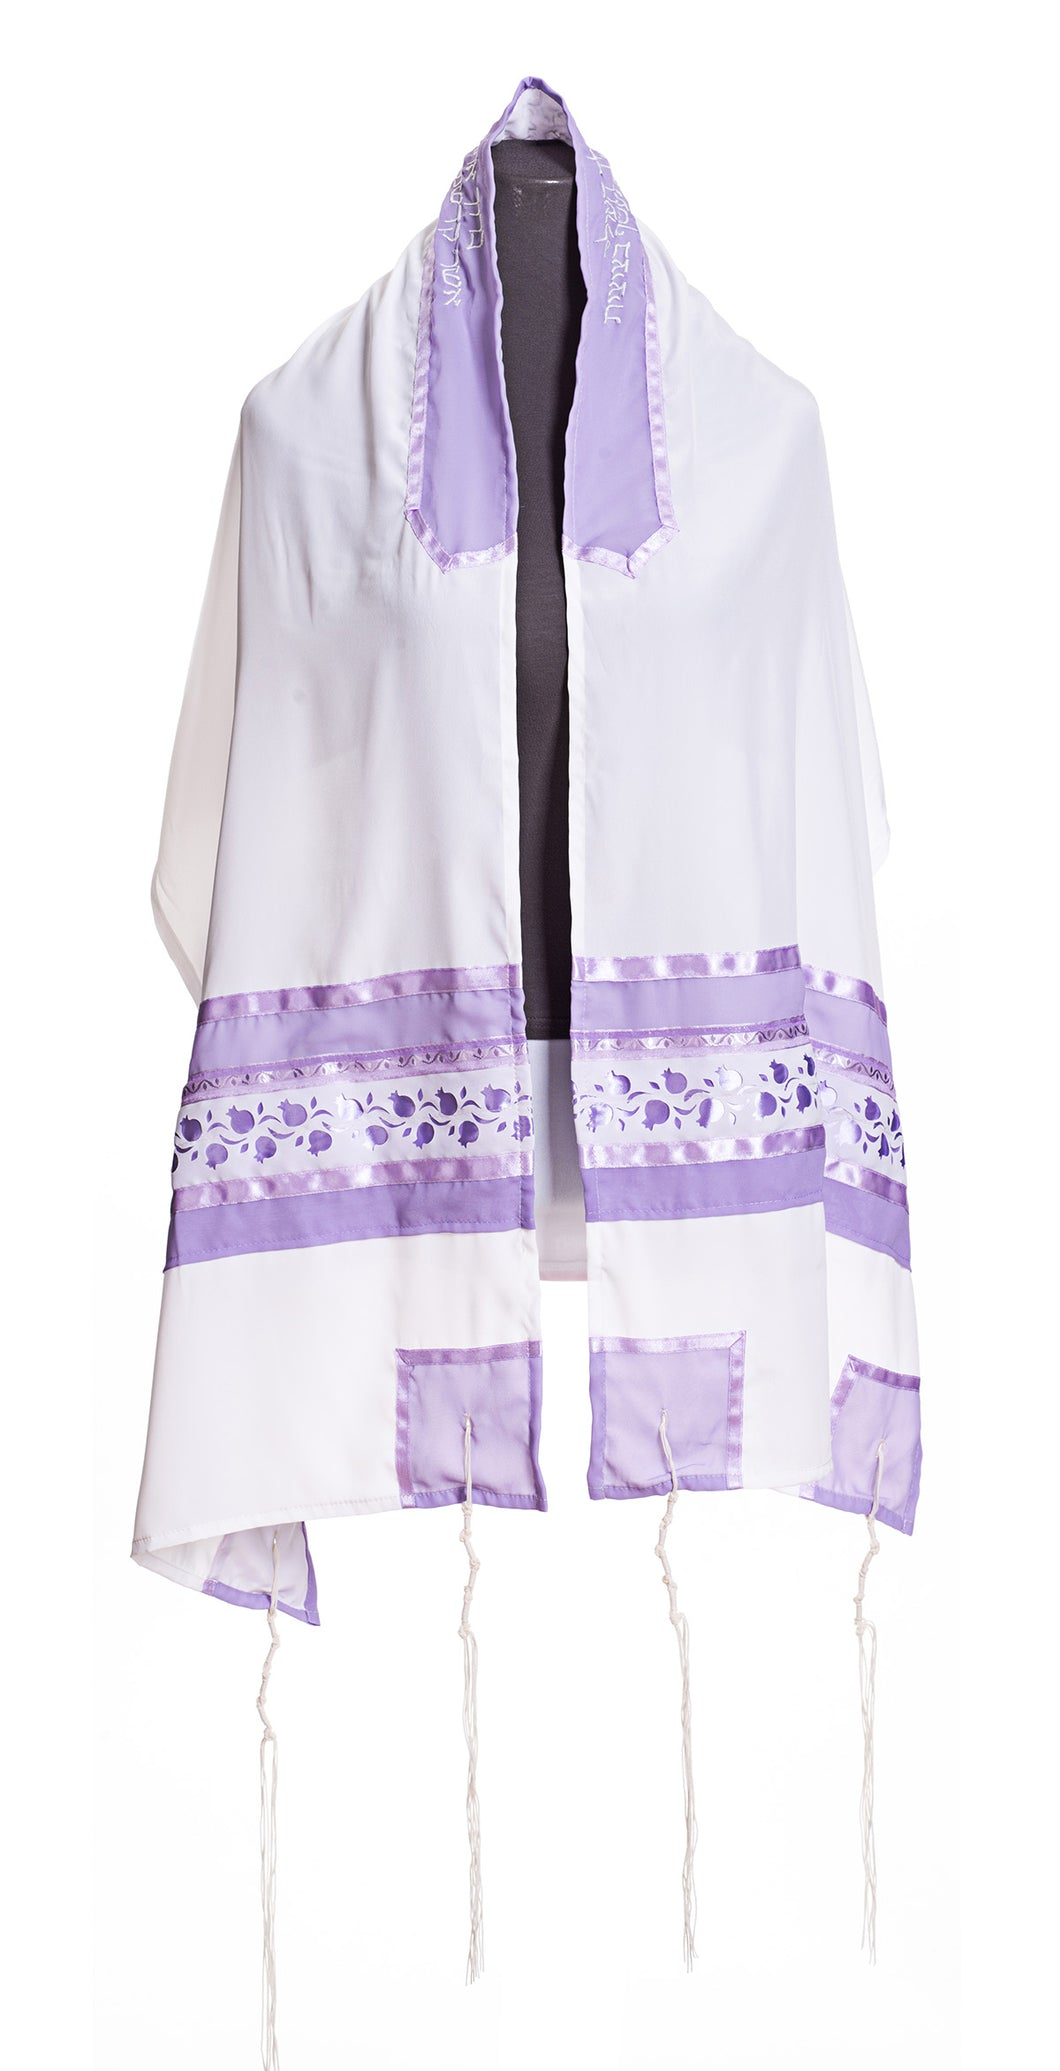 Lilac Pomegranates Tallit for women, Bat Mitzvah Tallit, Silk Tallit, Girls Tallit by Galilee Silks